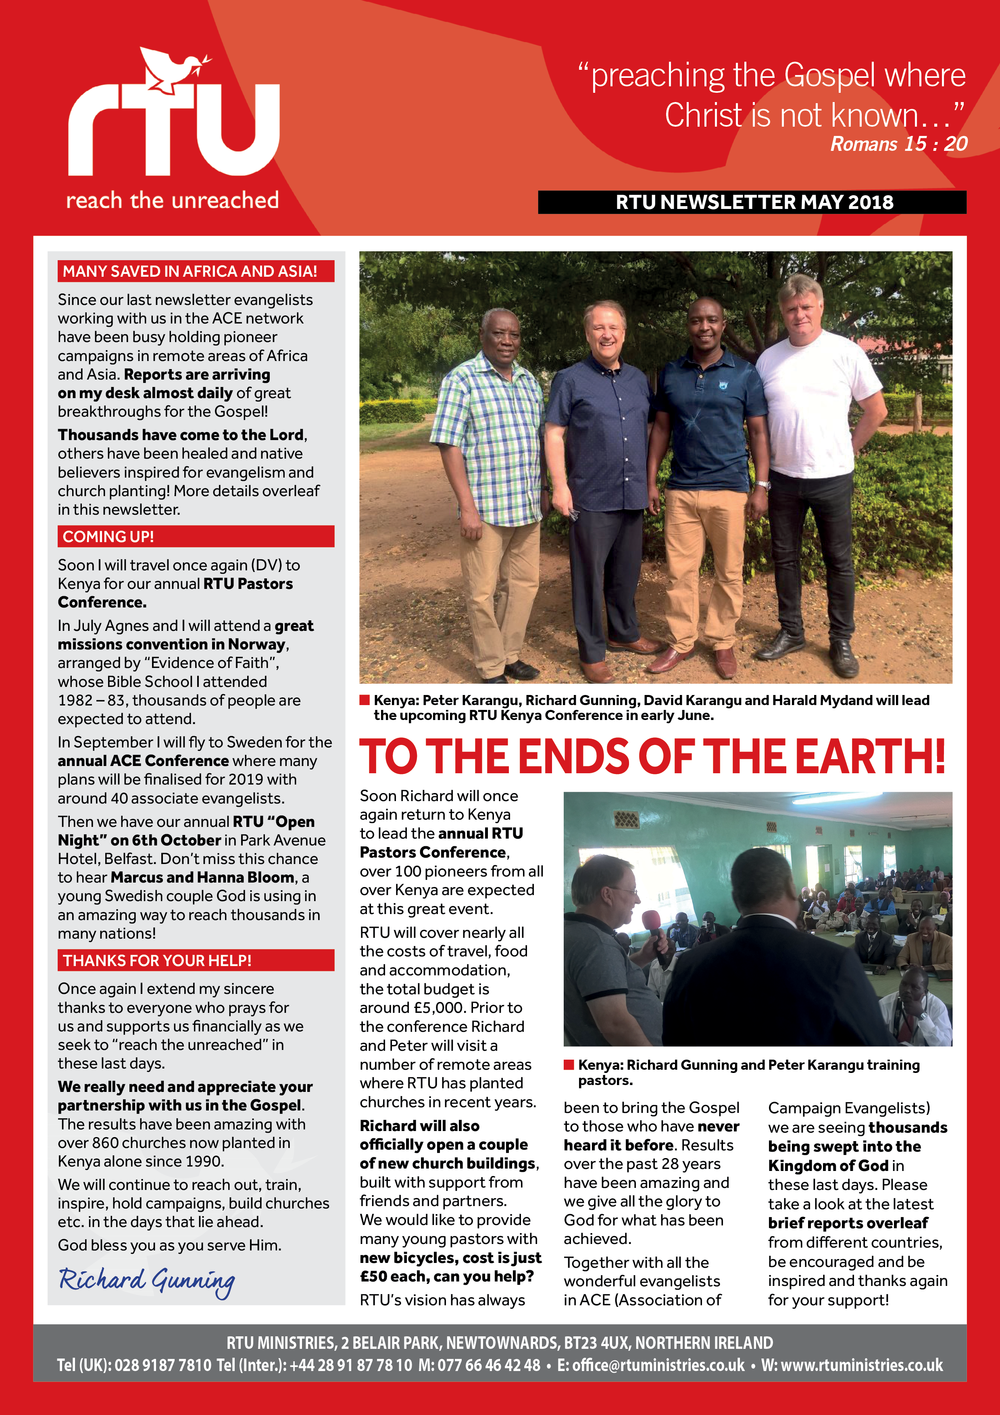 019910 - RTU May 2018 Newsletter Web Version.png